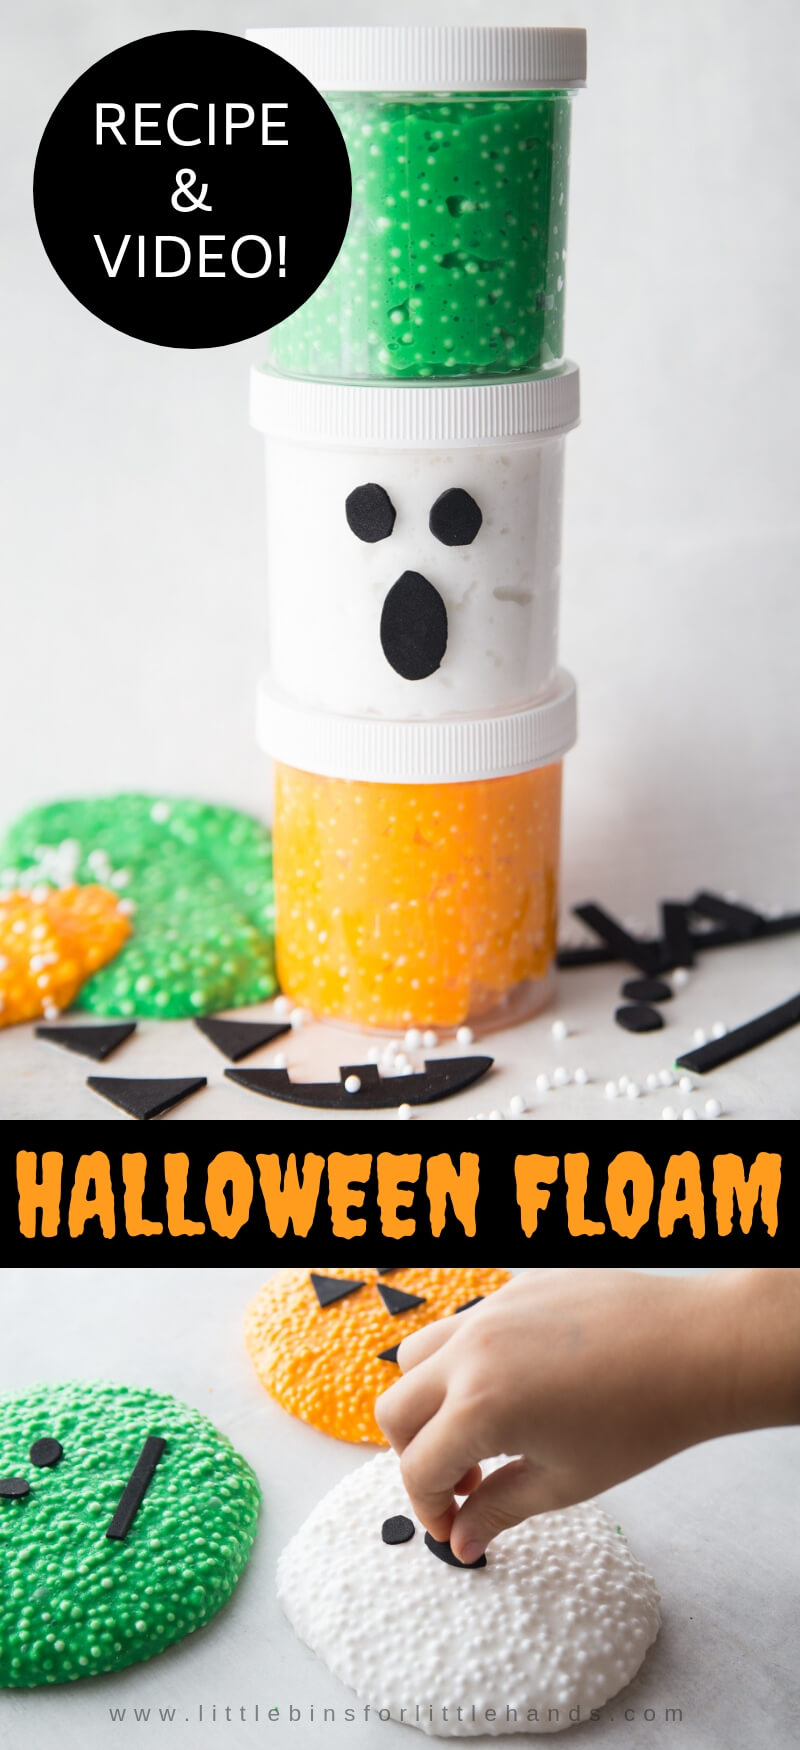 Halloween Floam for Kids Halloween Activity and Candy Free Halloween Treats